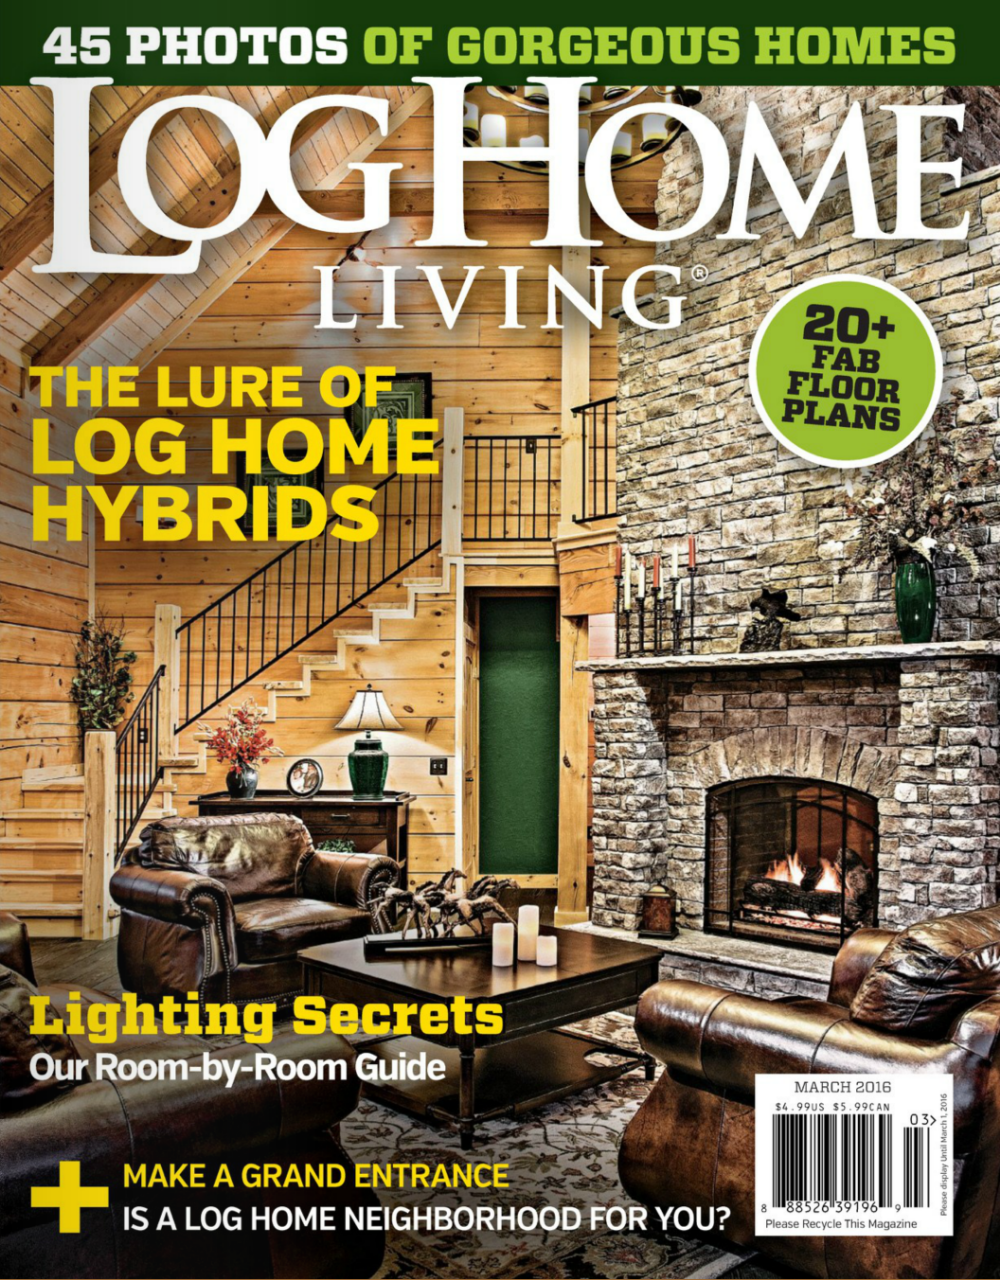 Mountain Top Featured In March 2016 Issue Of Log Home Living.